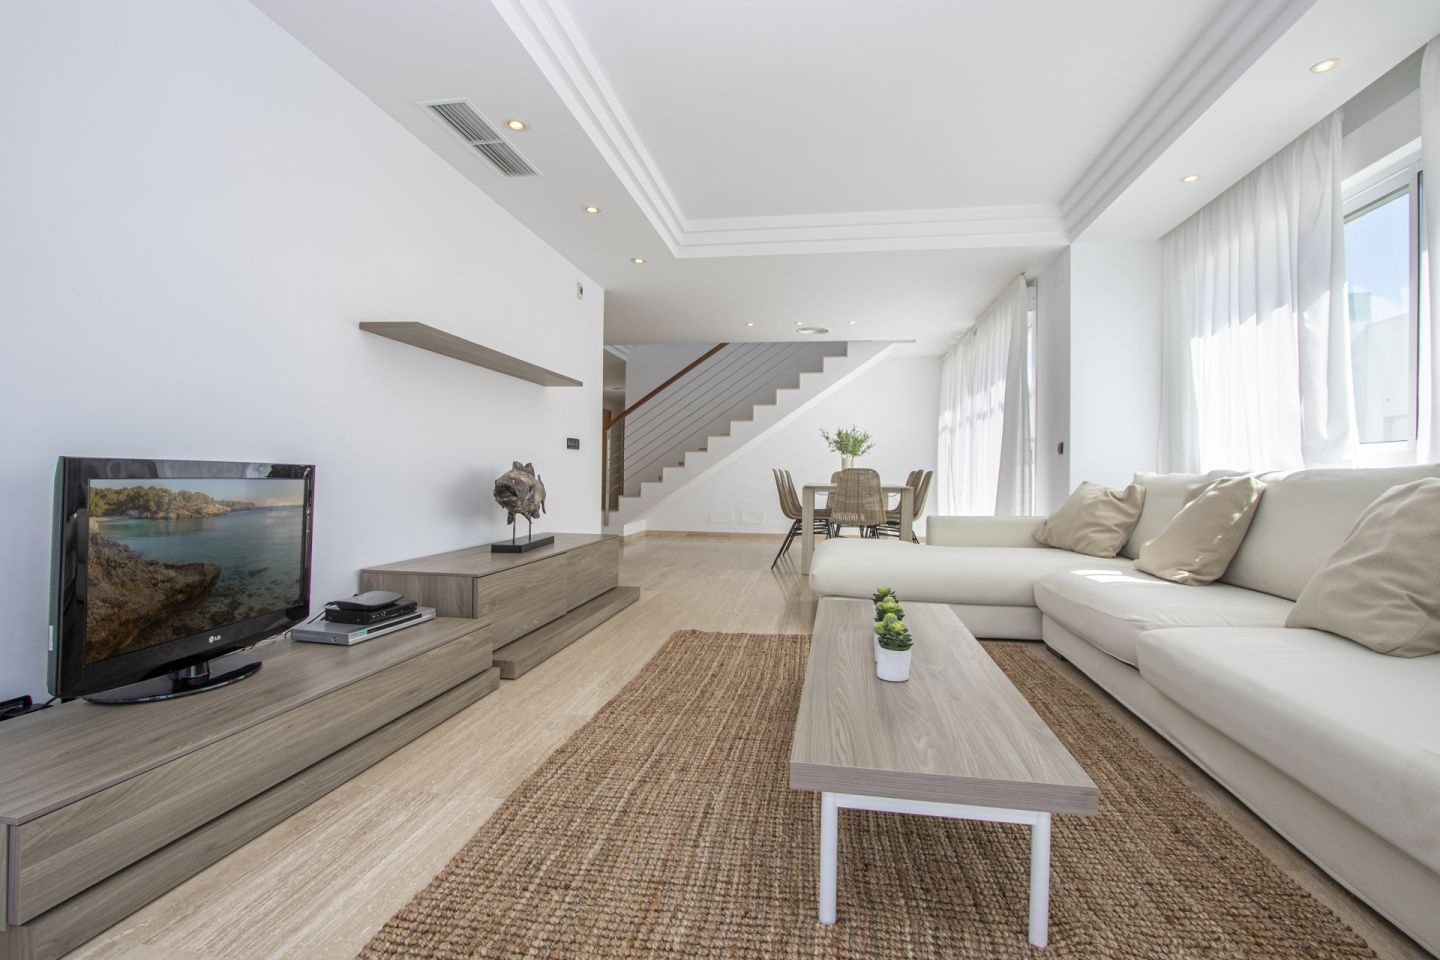 4 Bed Penthouse for sale in PUERTO POLLENSA 2